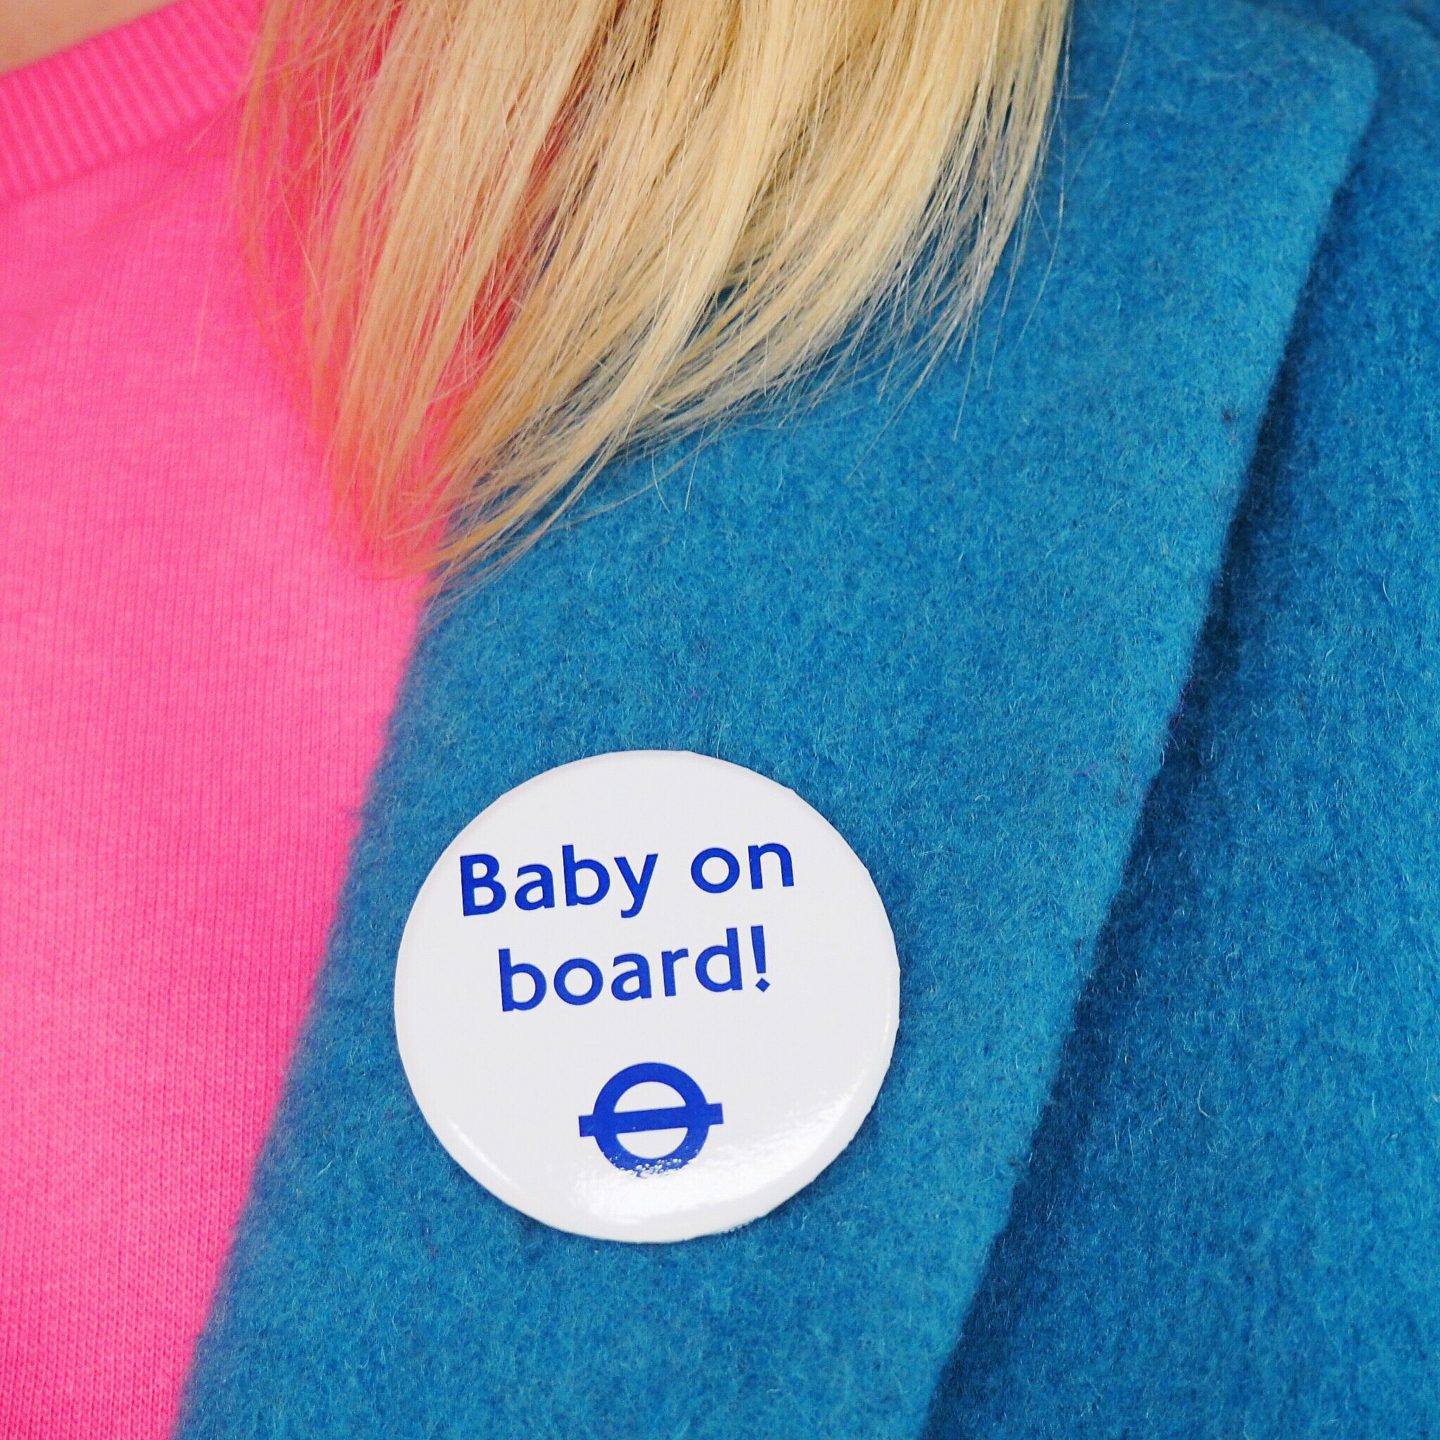 Baby on board badge TFL